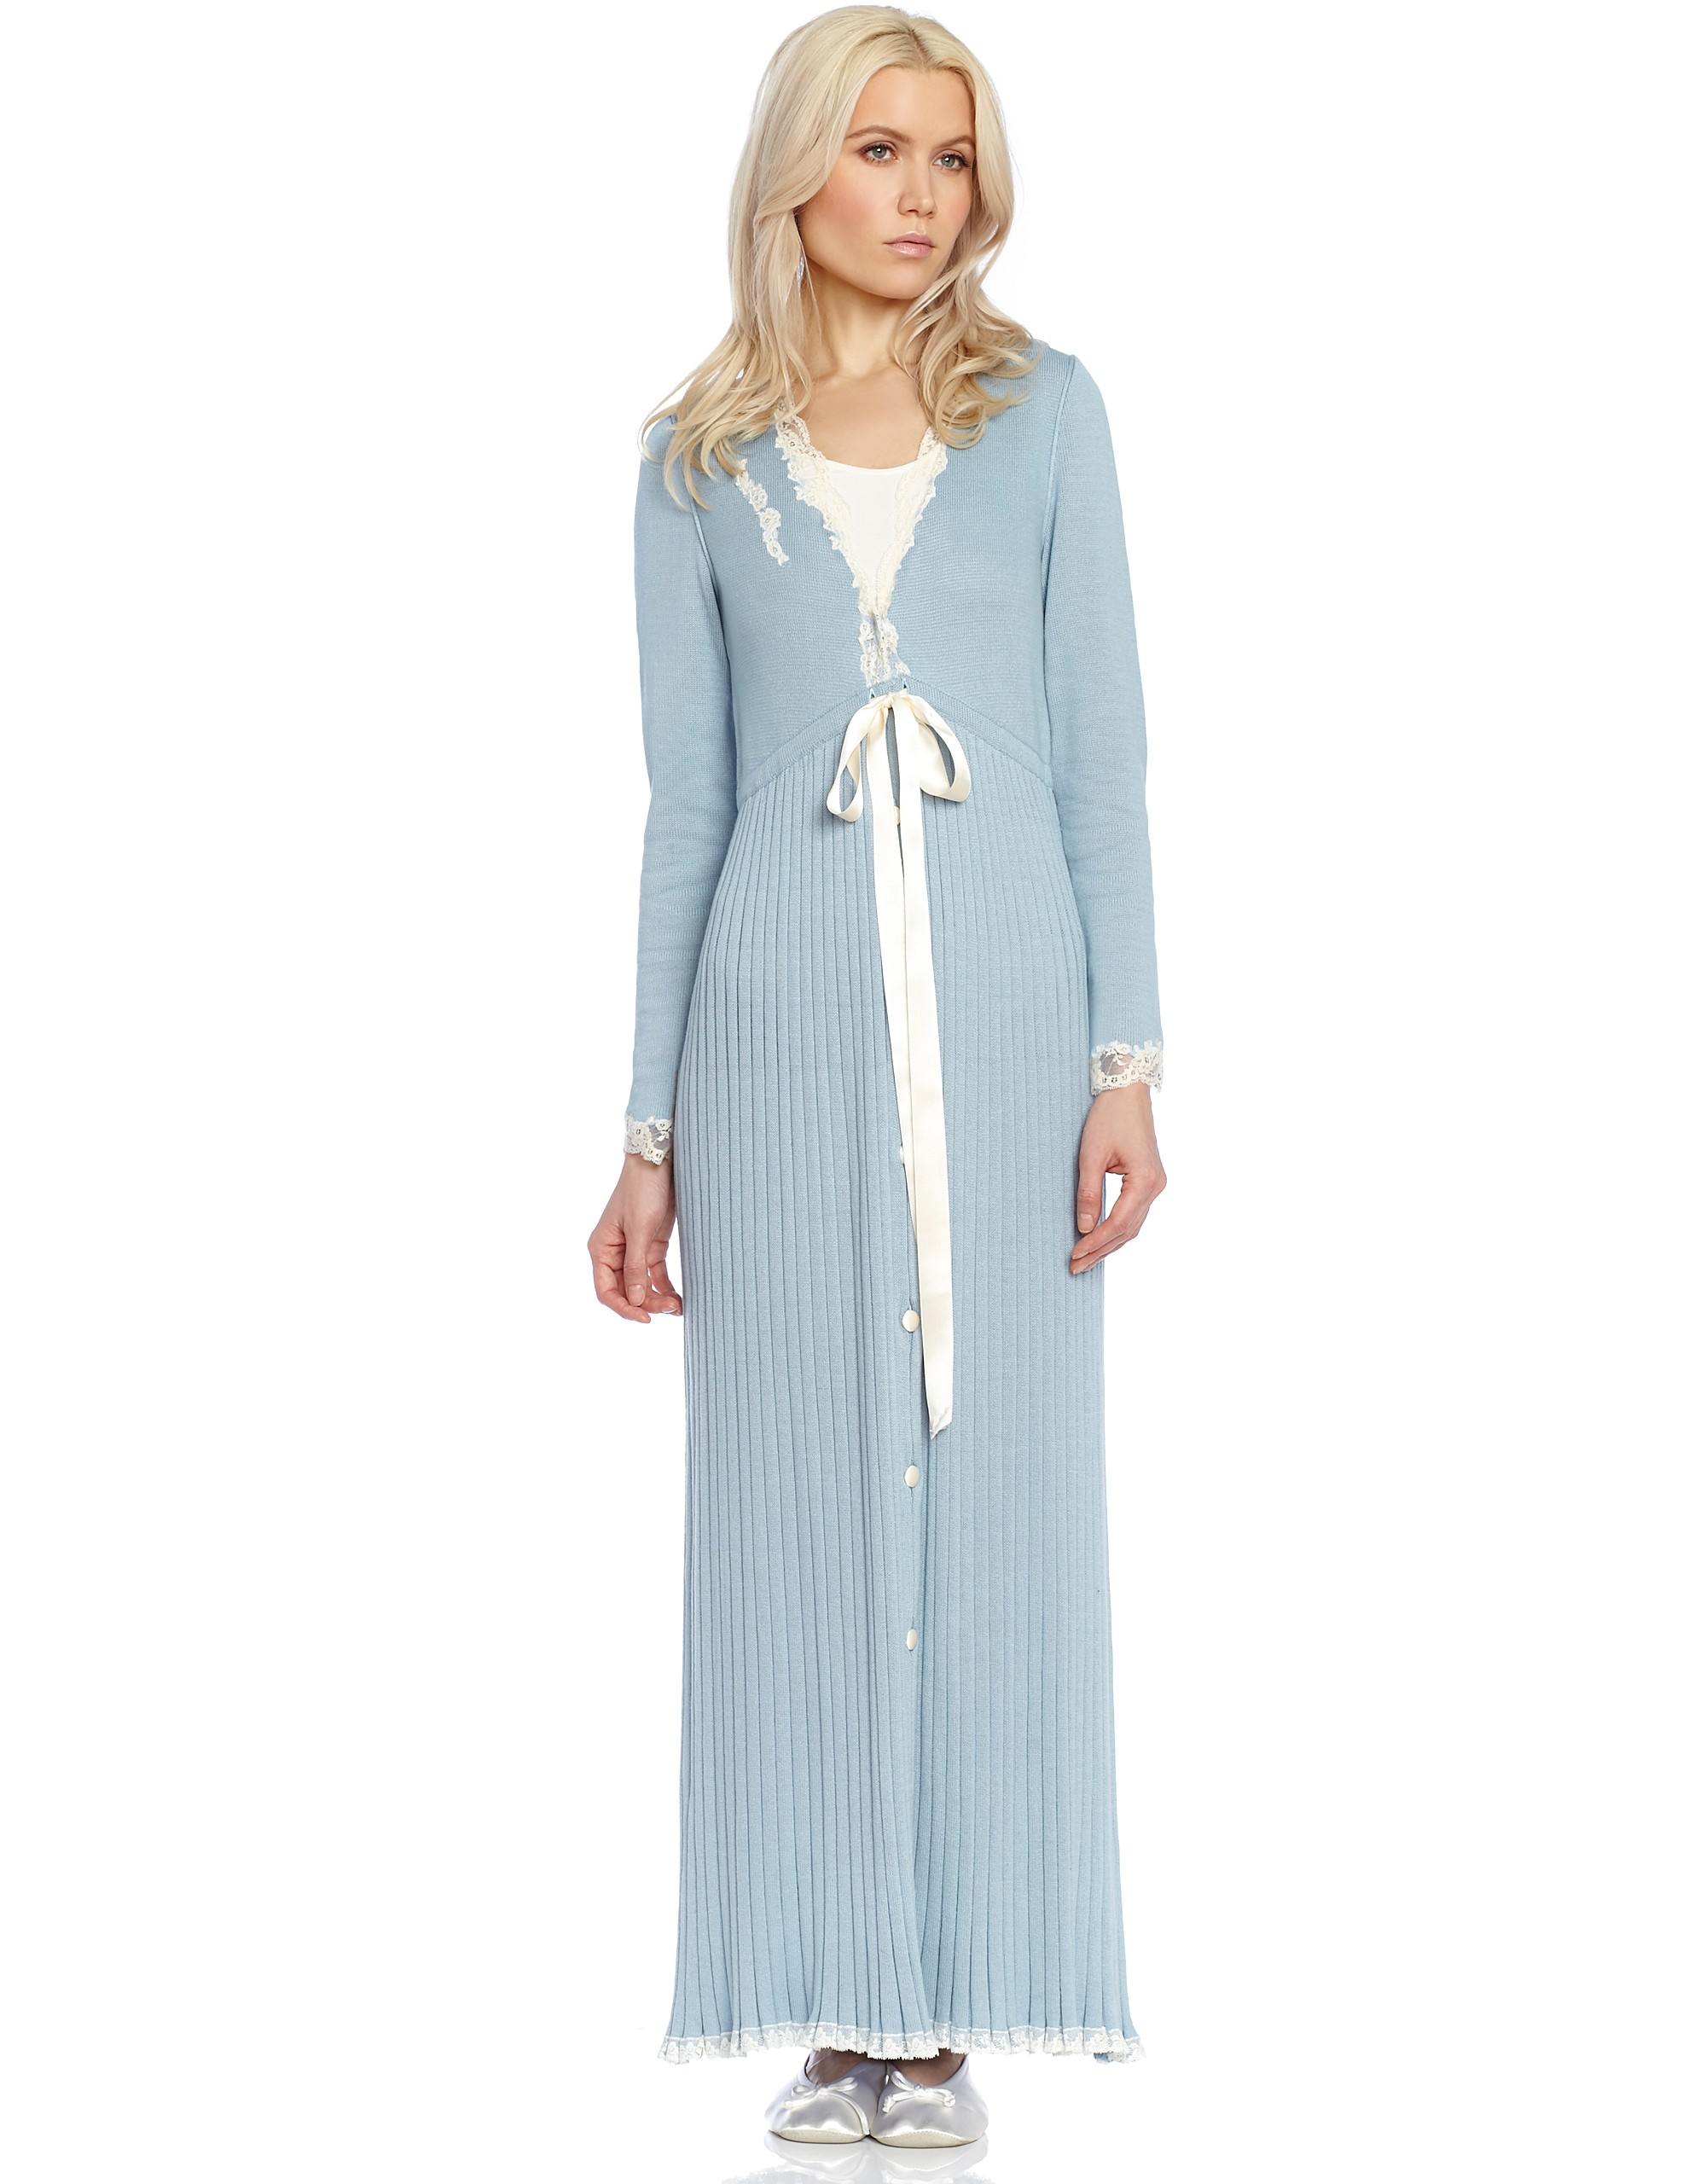 Rib Knit Button Robe with Lace Trim